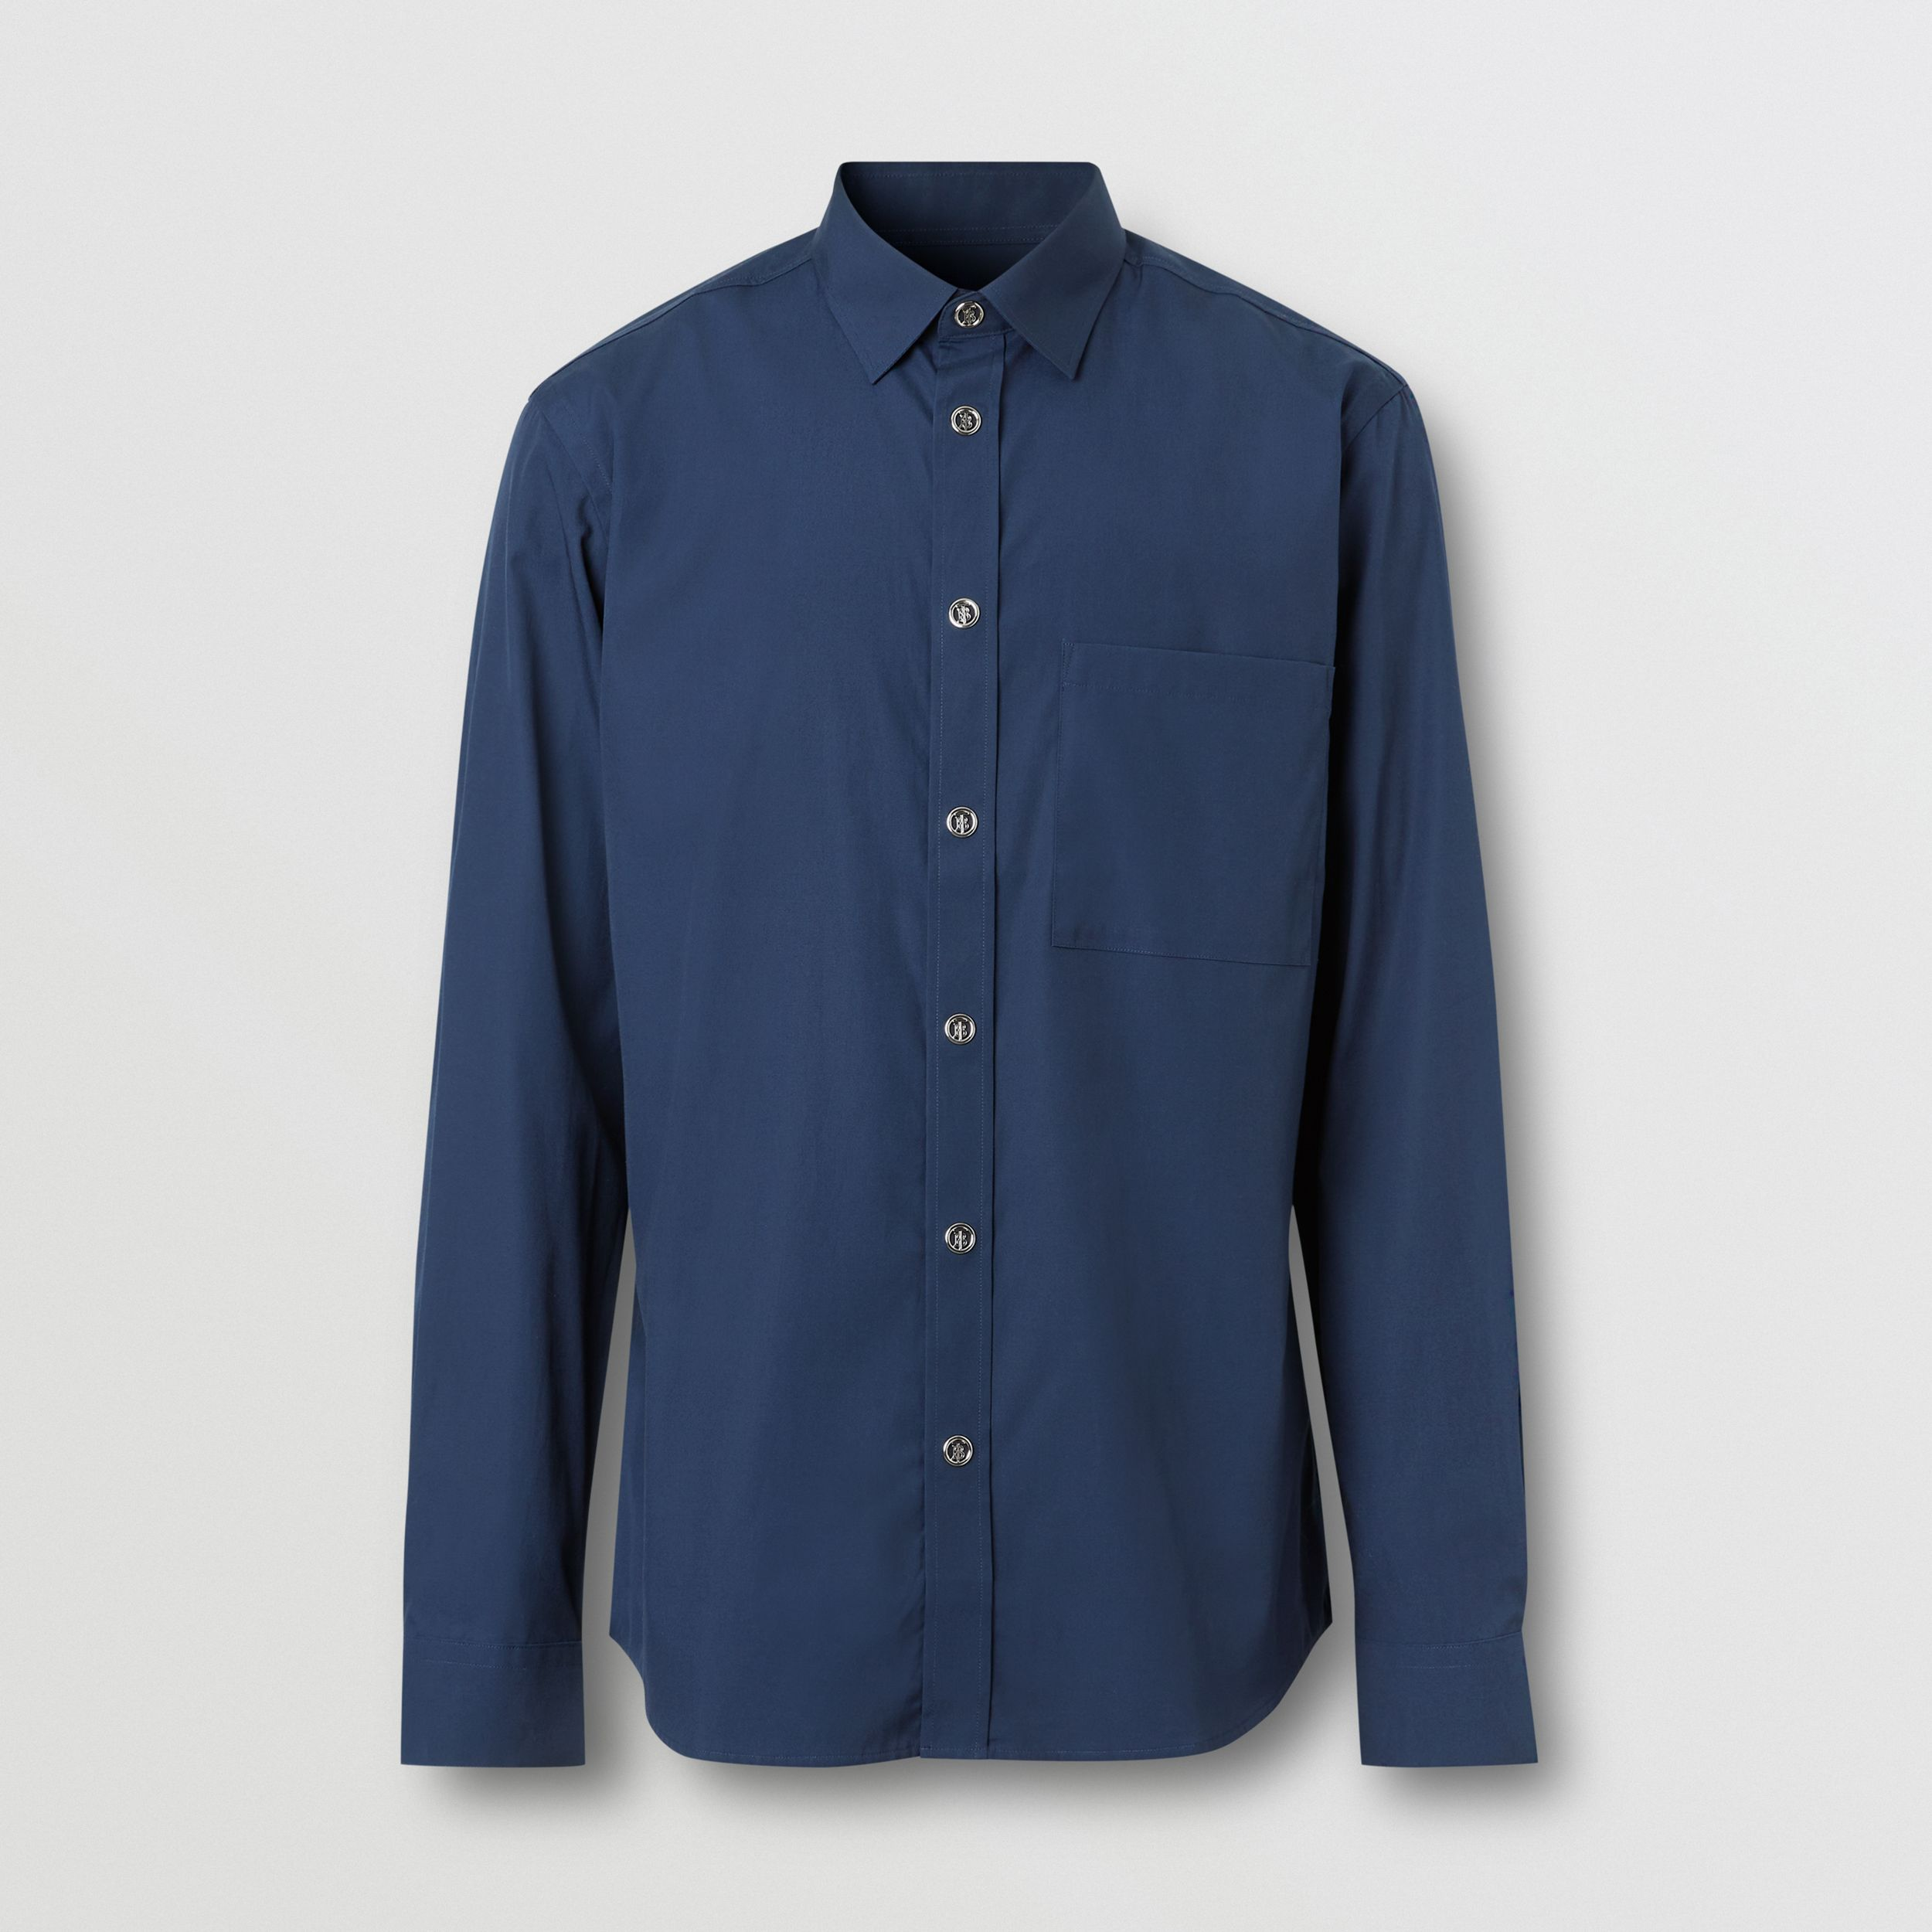 Monogram Motif Stretch Cotton Shirt in Navy - Men | Burberry United Kingdom - 4